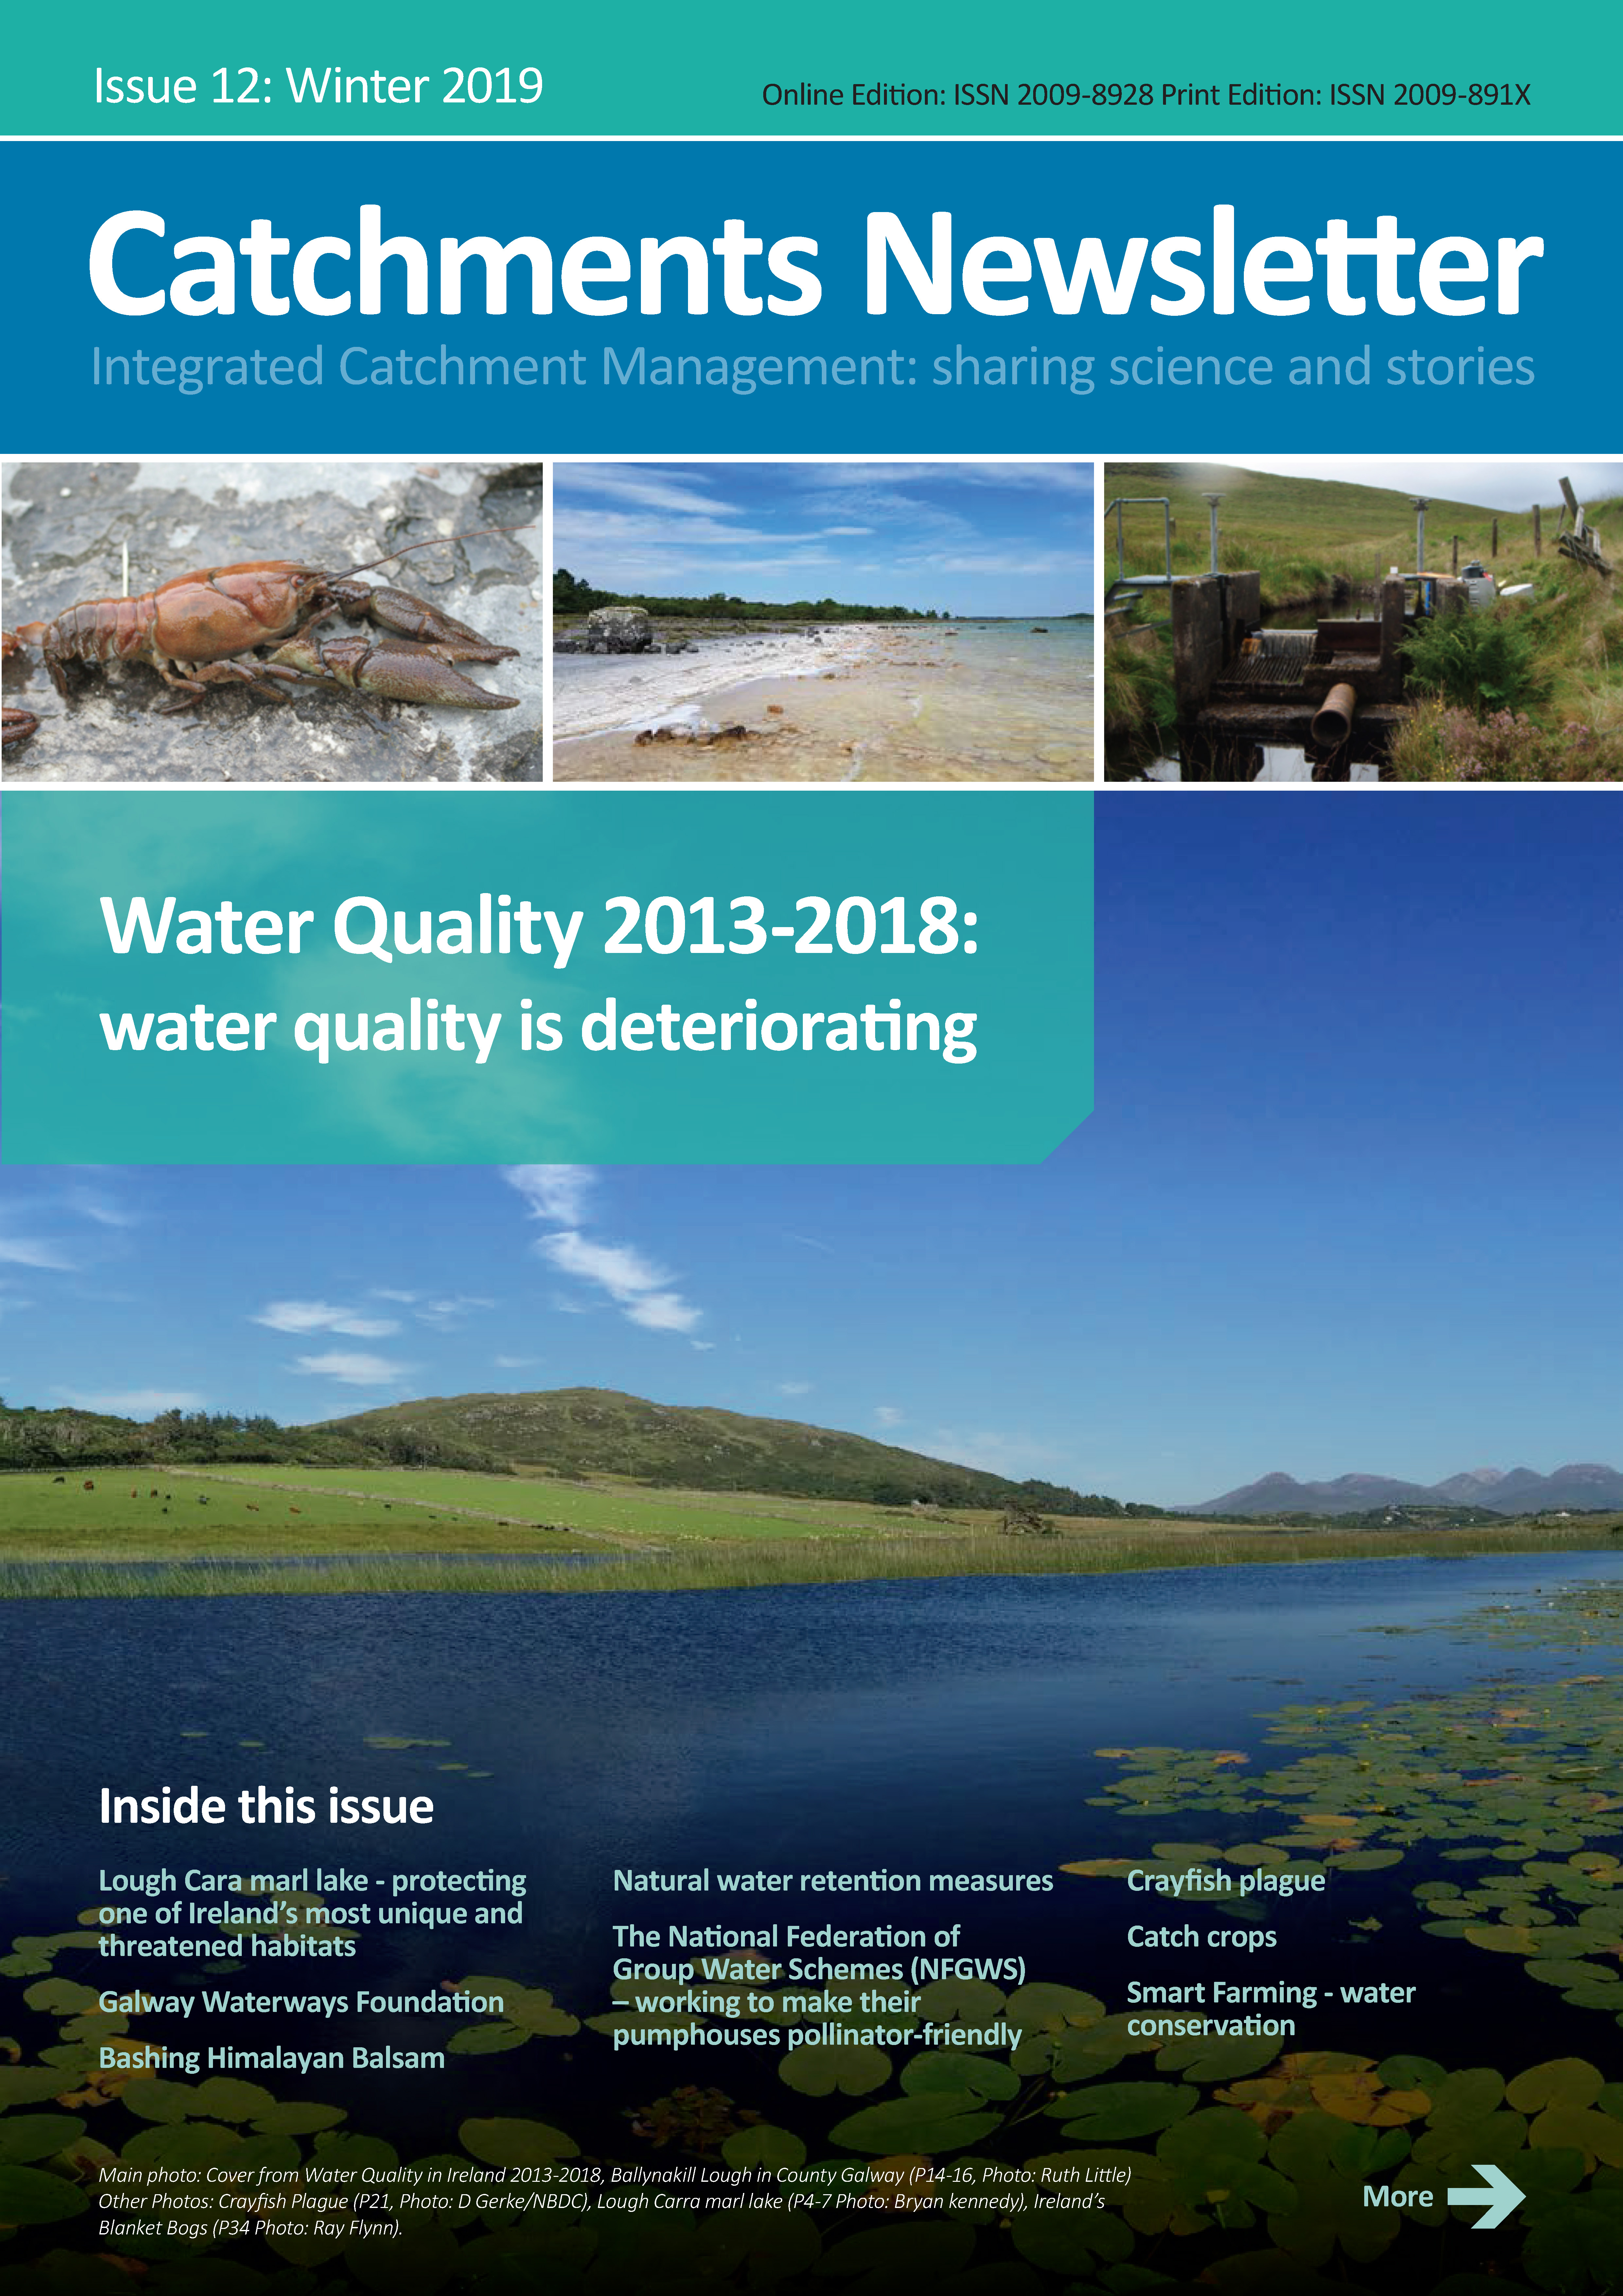 Catchments Newsletter - sharing science and stories. Winter 2019.